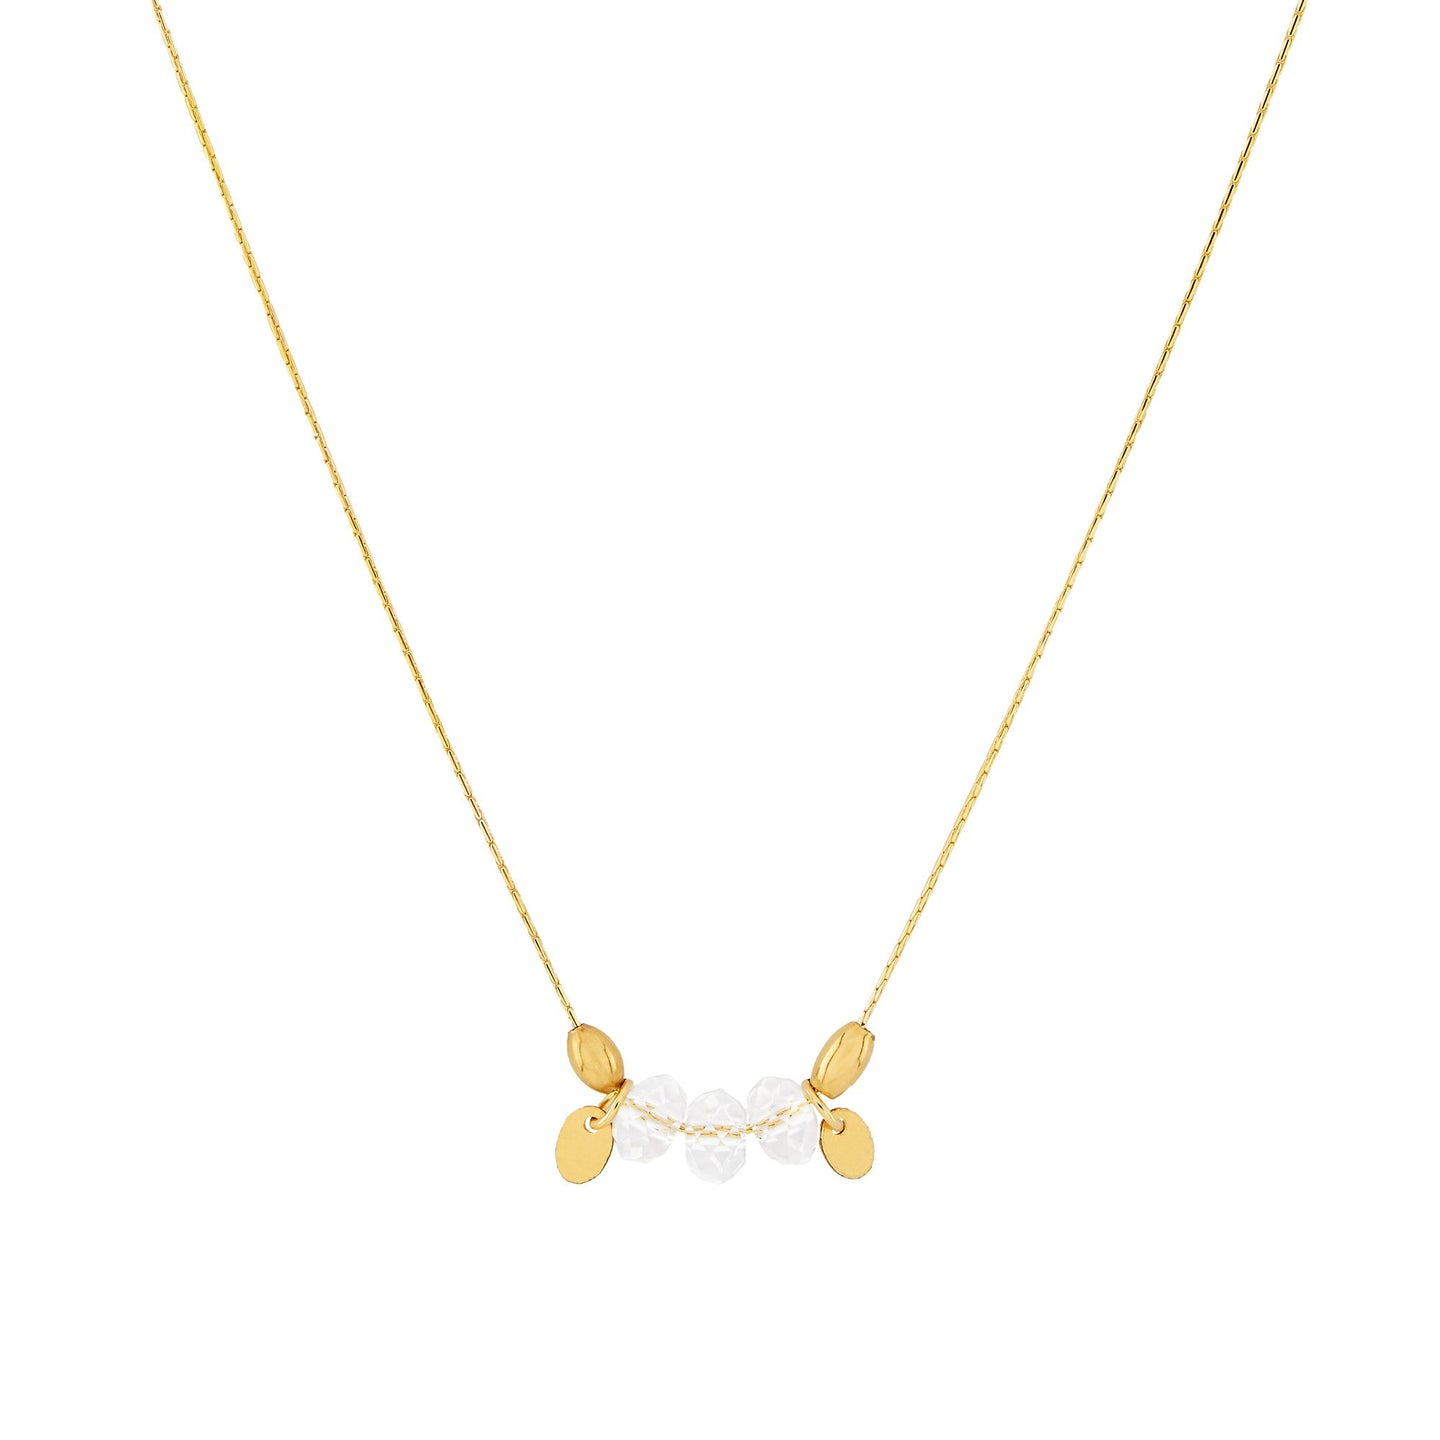 Petite Grand - Crystal Drop Necklace - Gold